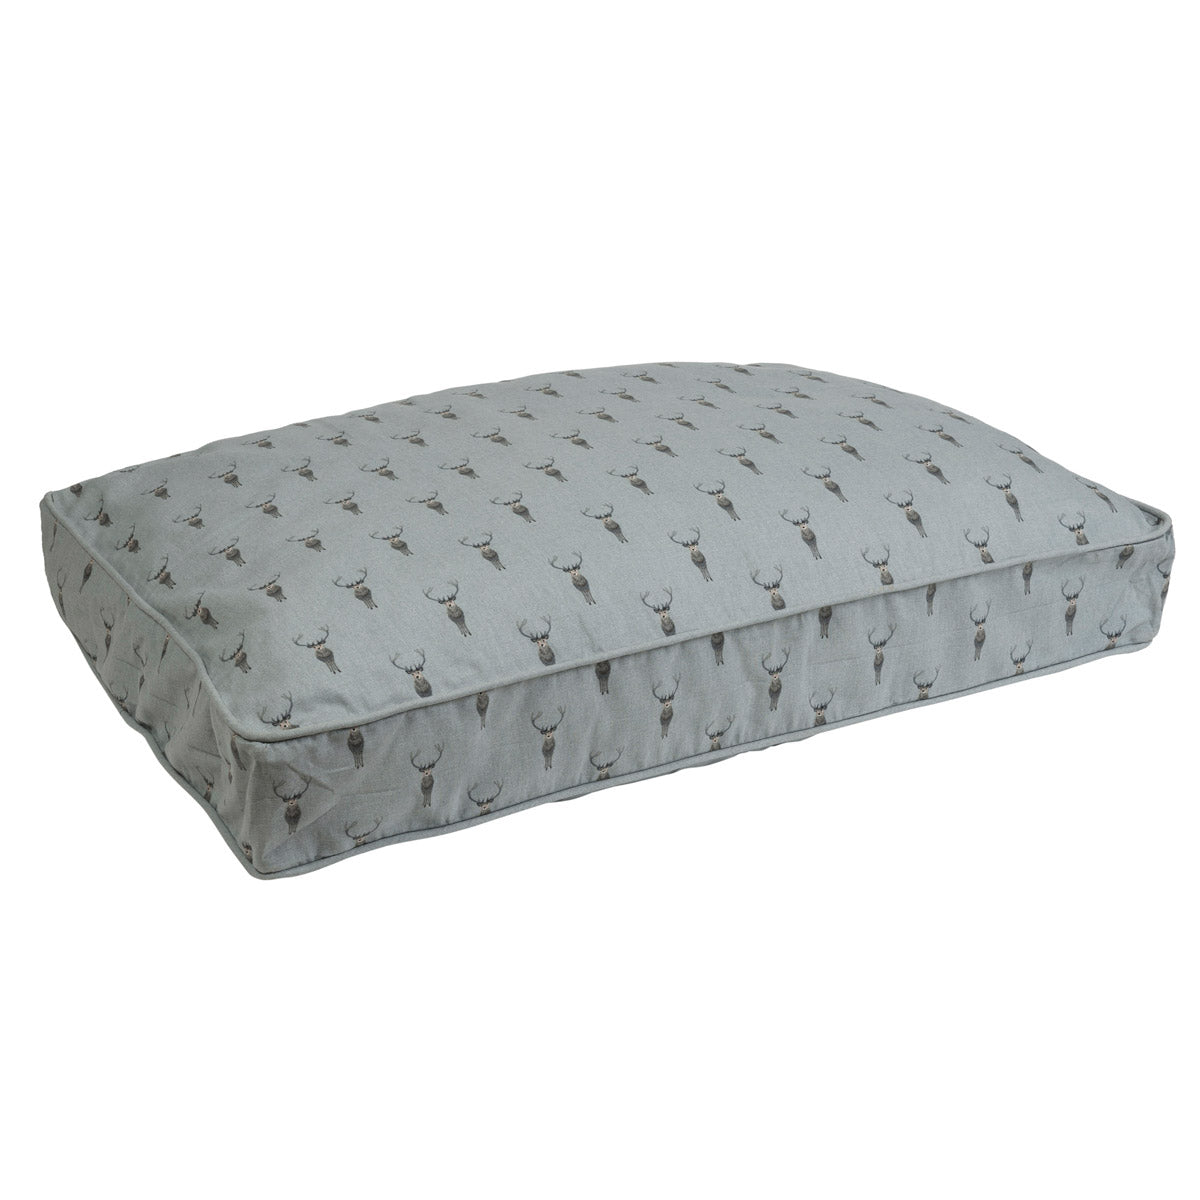 Highland Stag Pet Bed Mattress